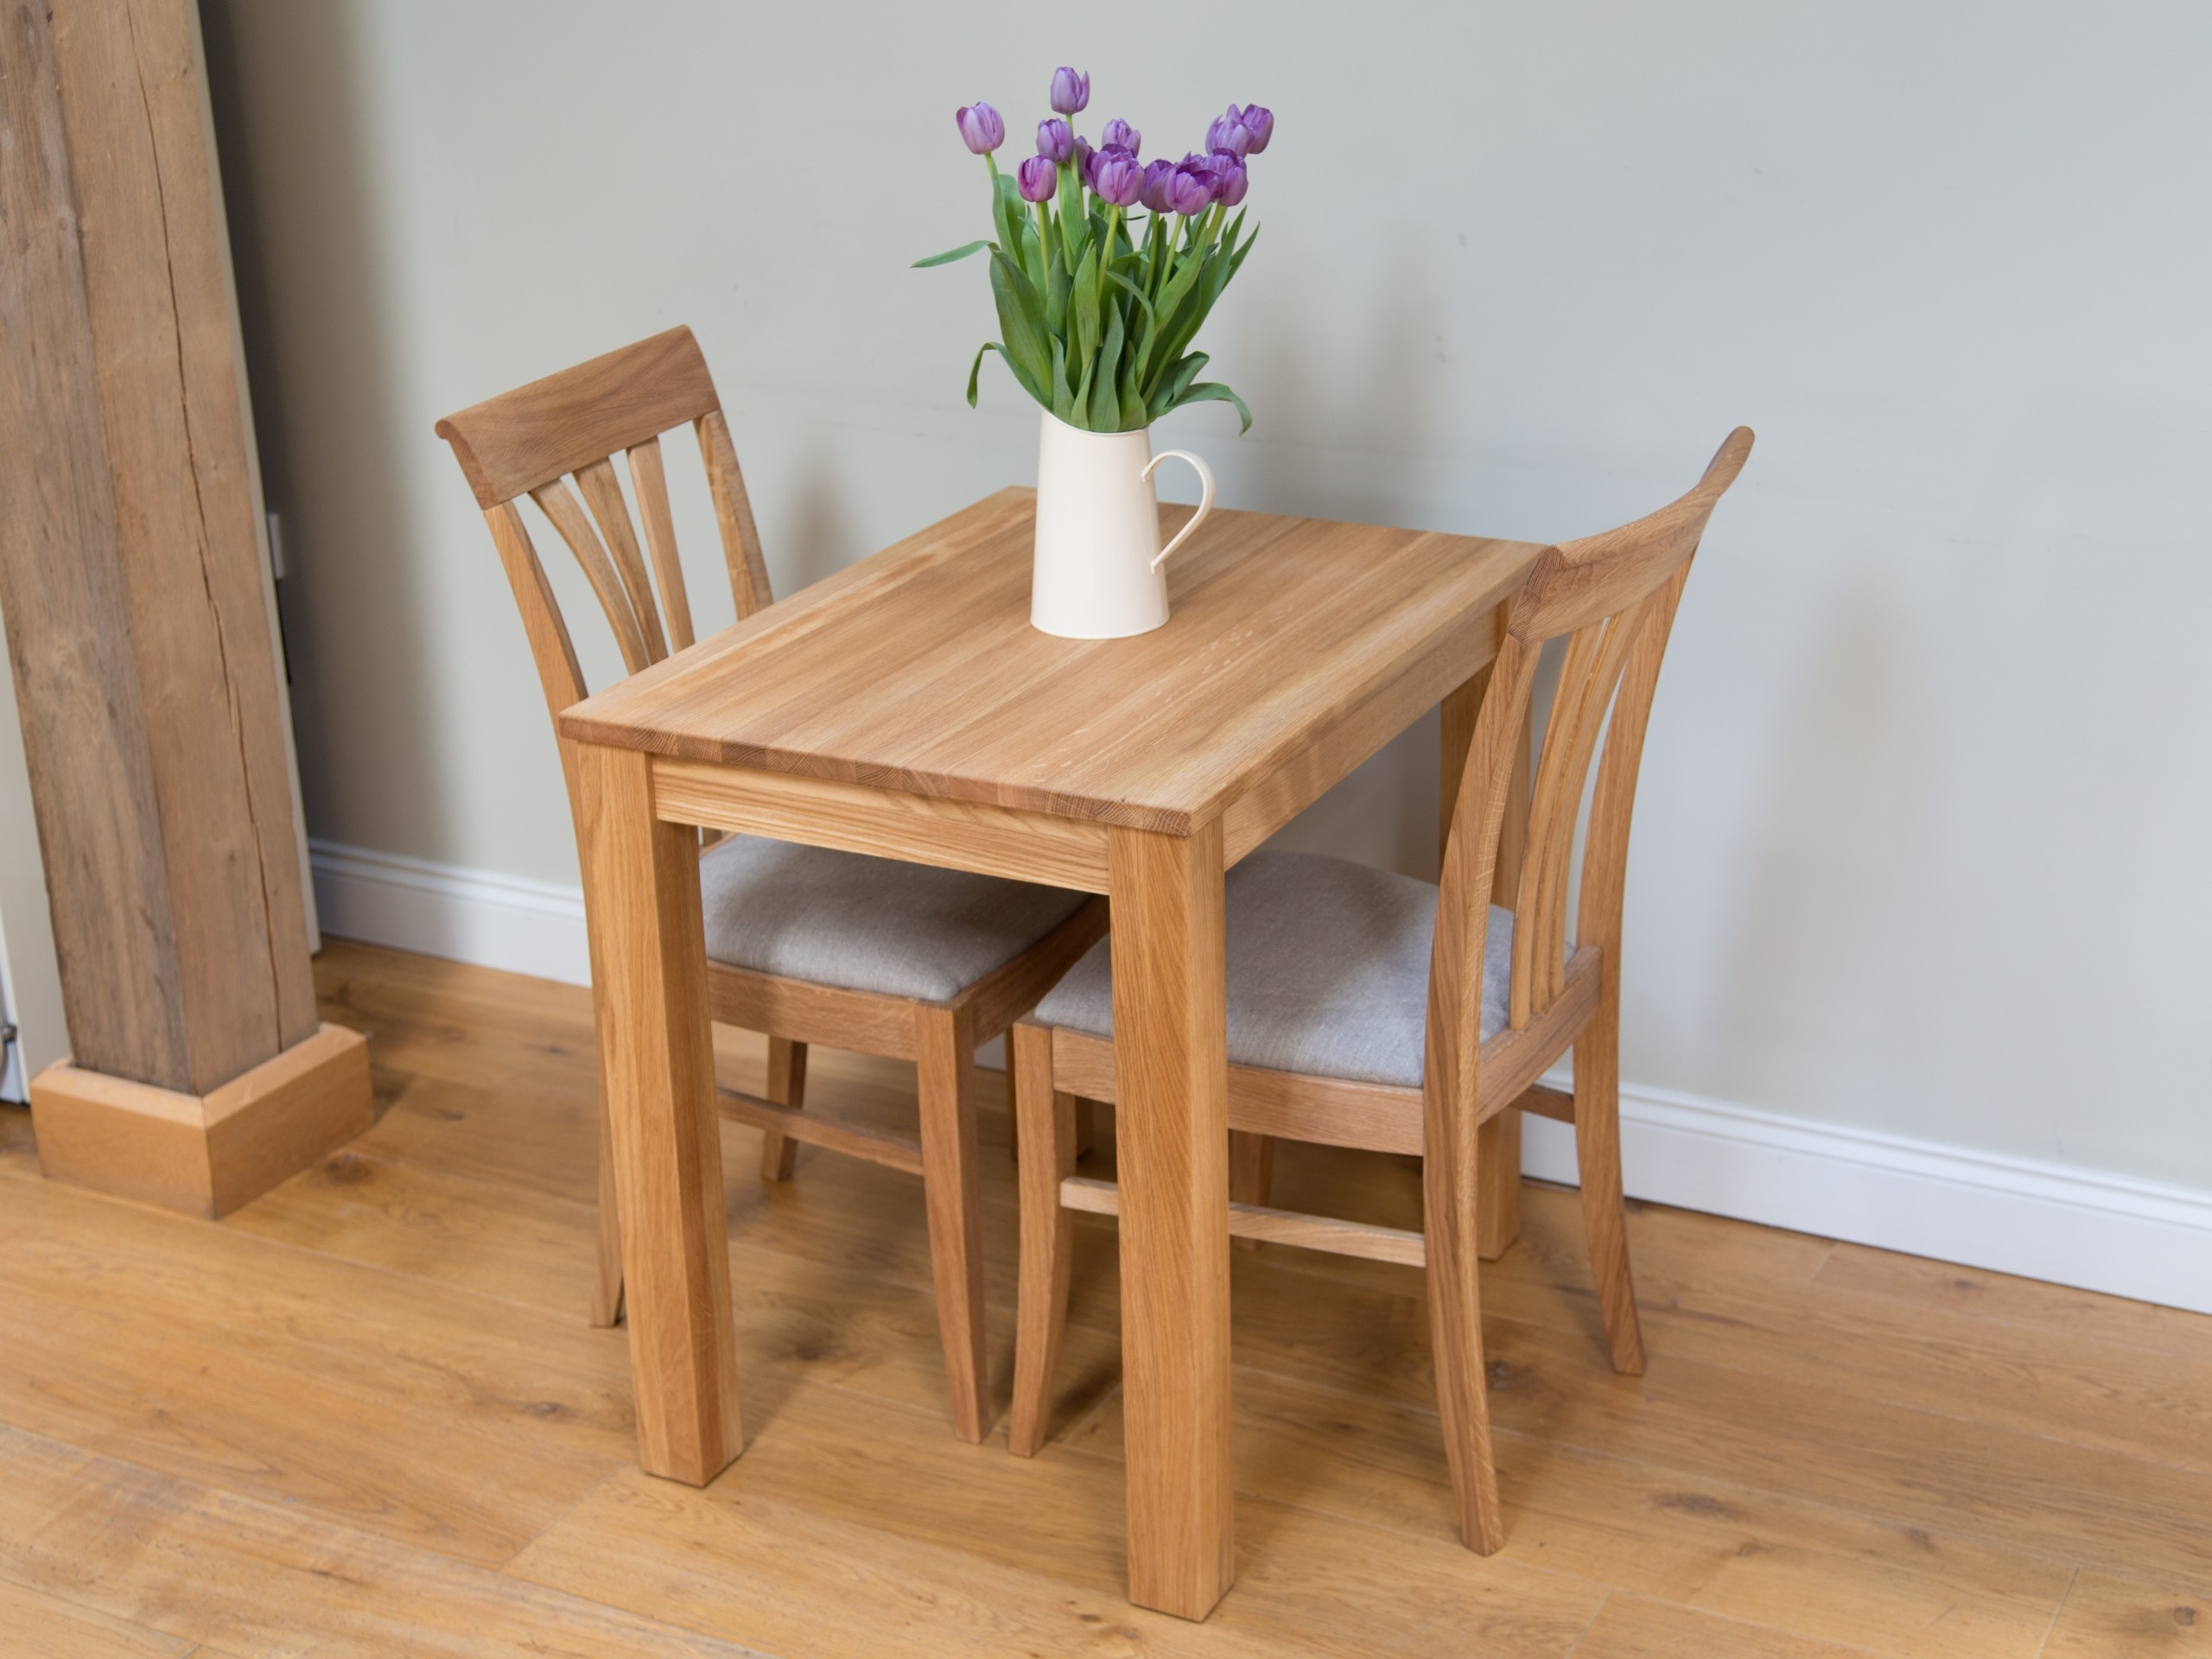 Popular Two Chair Dining Tables For Oak Kitchen Table Chair Dining Set From Top Furniture, At A Table (Gallery 5 of 25)